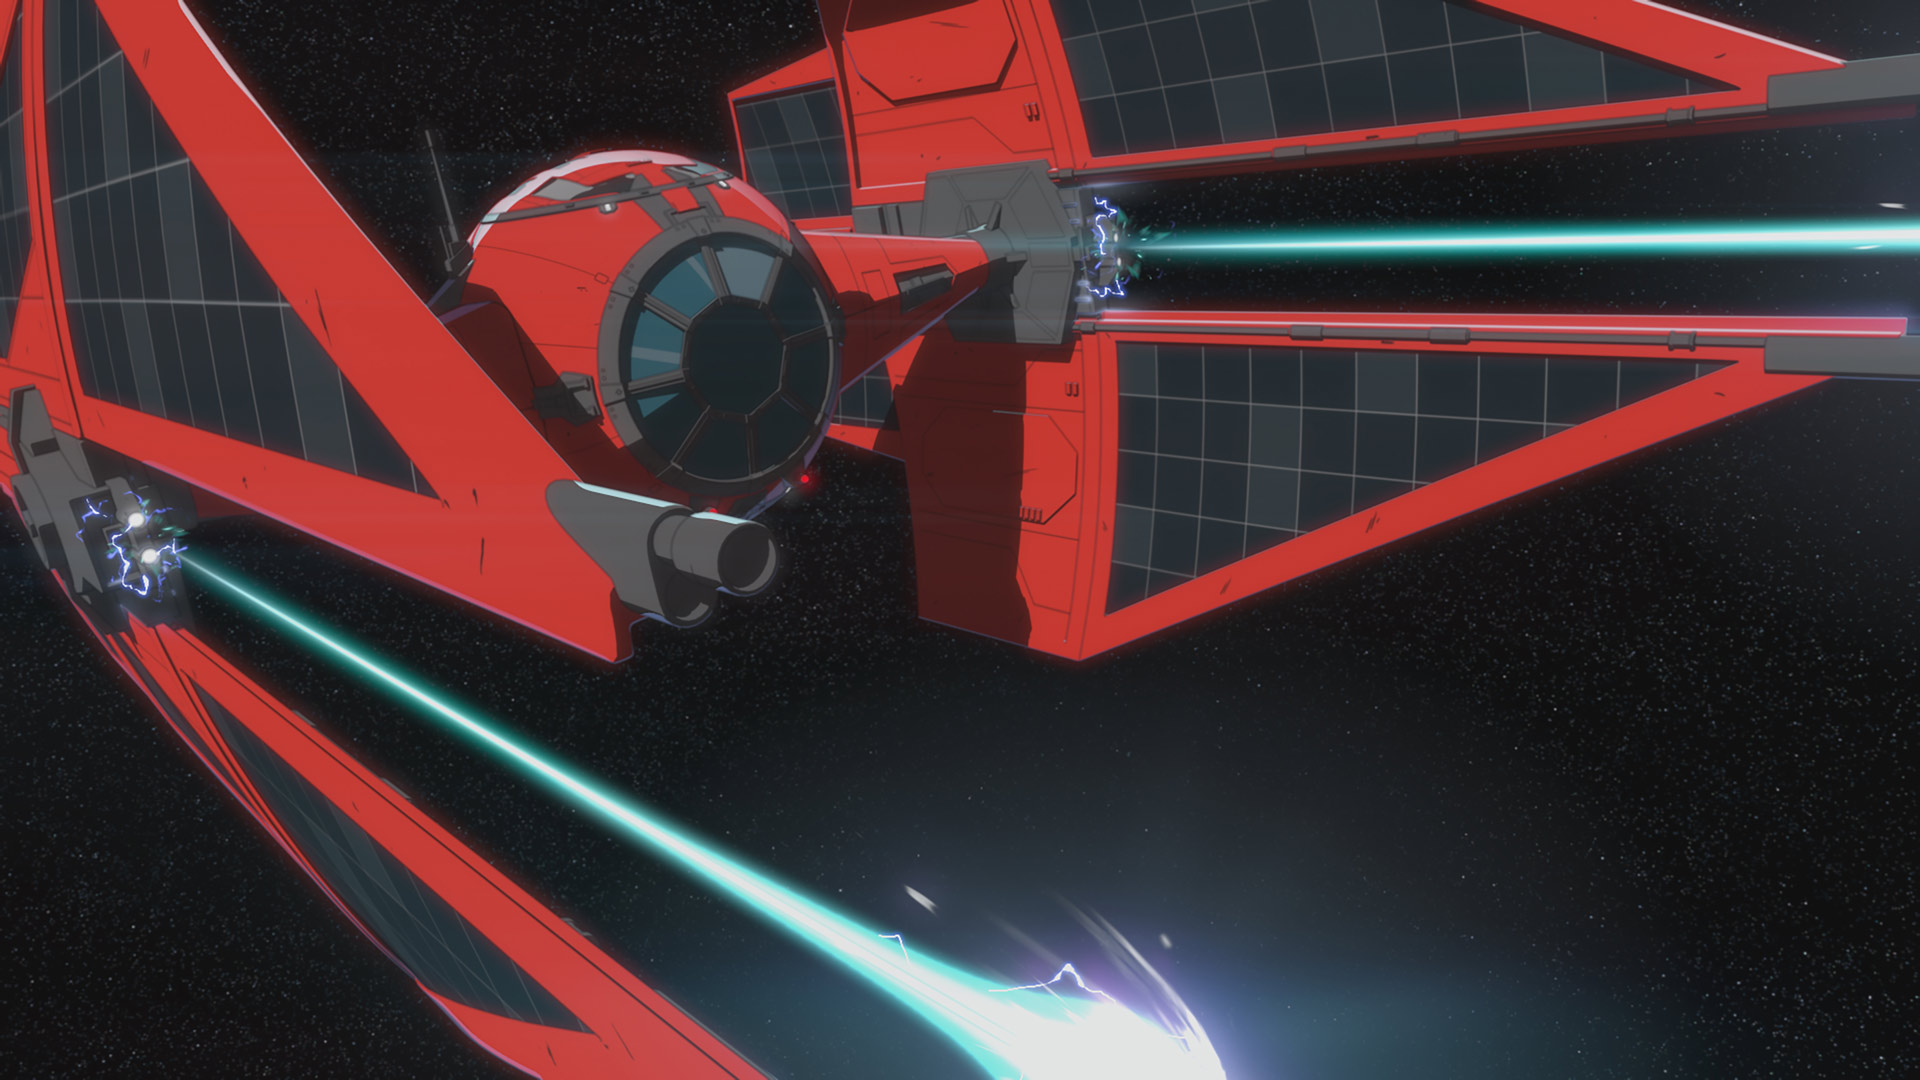 A TIE fighter in Star Wars Resistance.